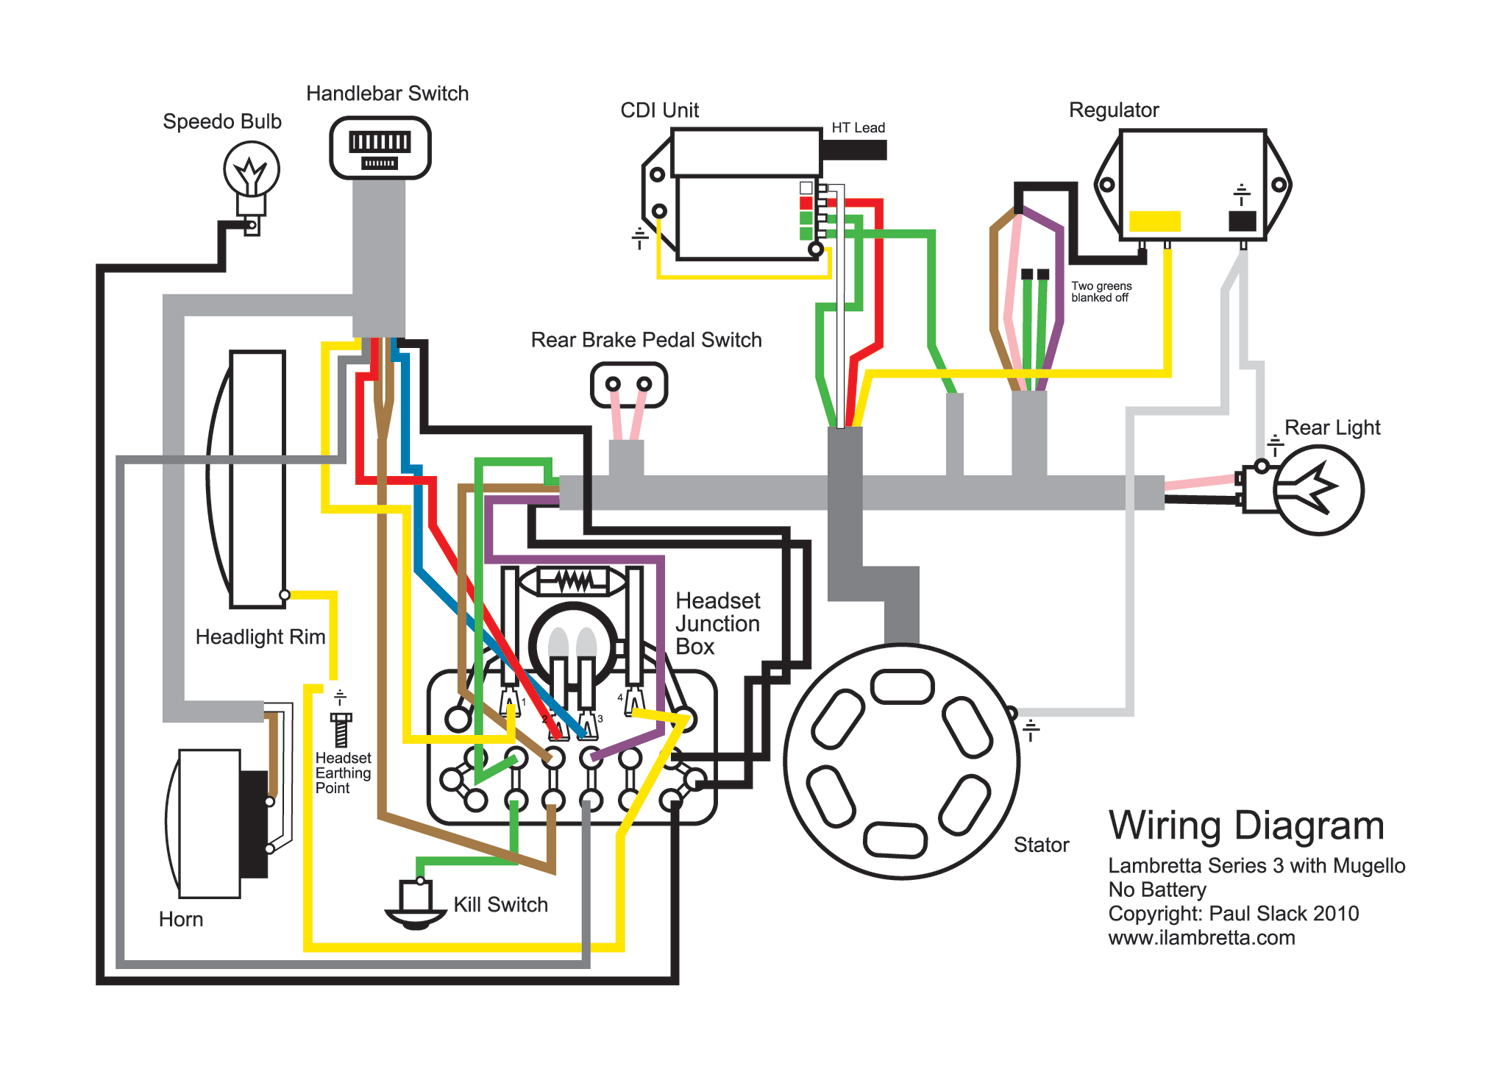 Basic Ignition Wiring Diagram With Cdi Description 50cc Chinese Atv Diagrams Best Dc 5 Wire 12 Volt